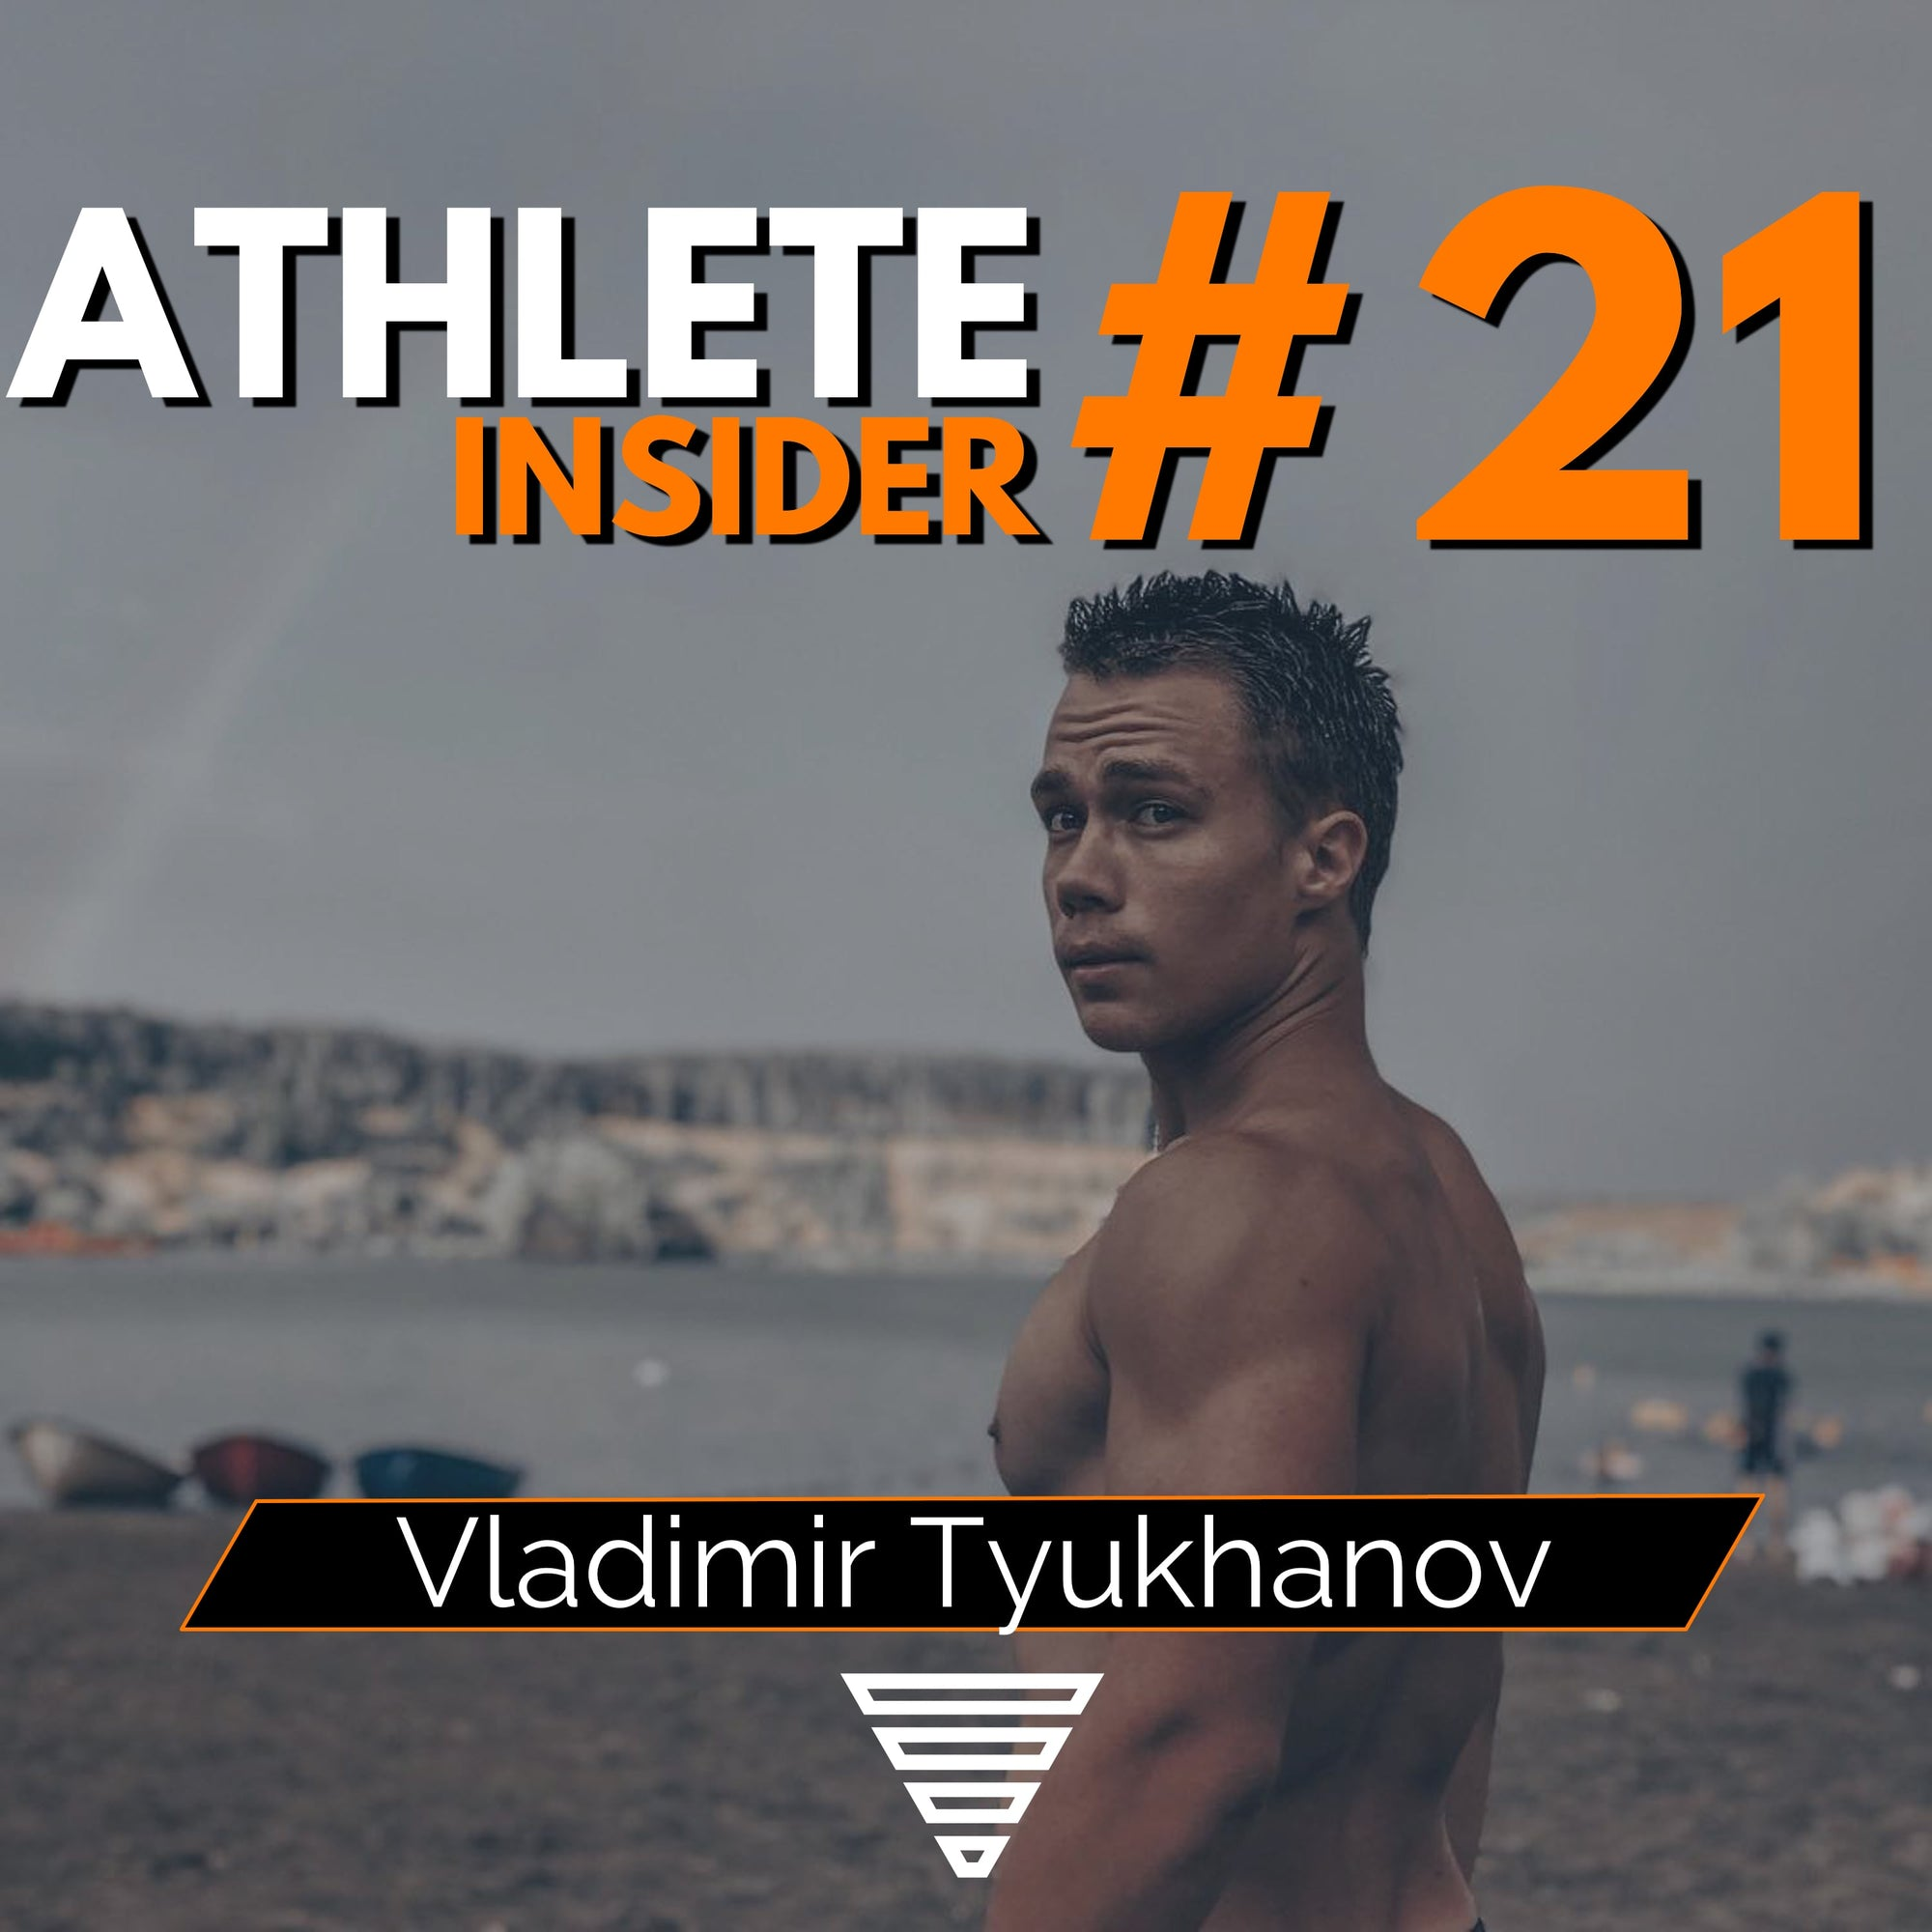 VLADIMIR TYUKHANOV | Learn explosive freestyle | Interview | The Athlete Insider Podcast #21